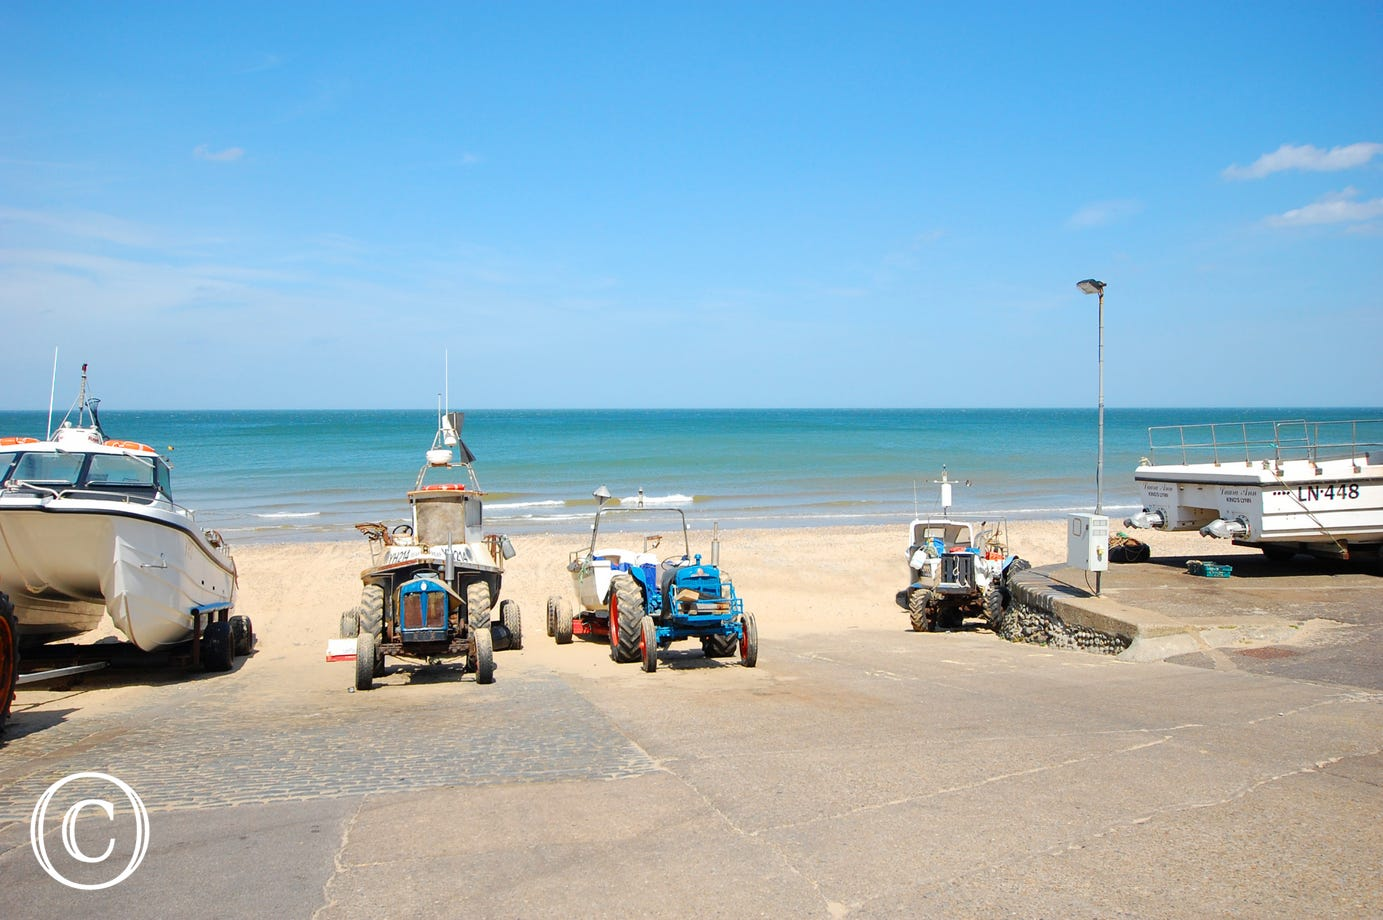 One of Cromer's attractions - the fishing boats